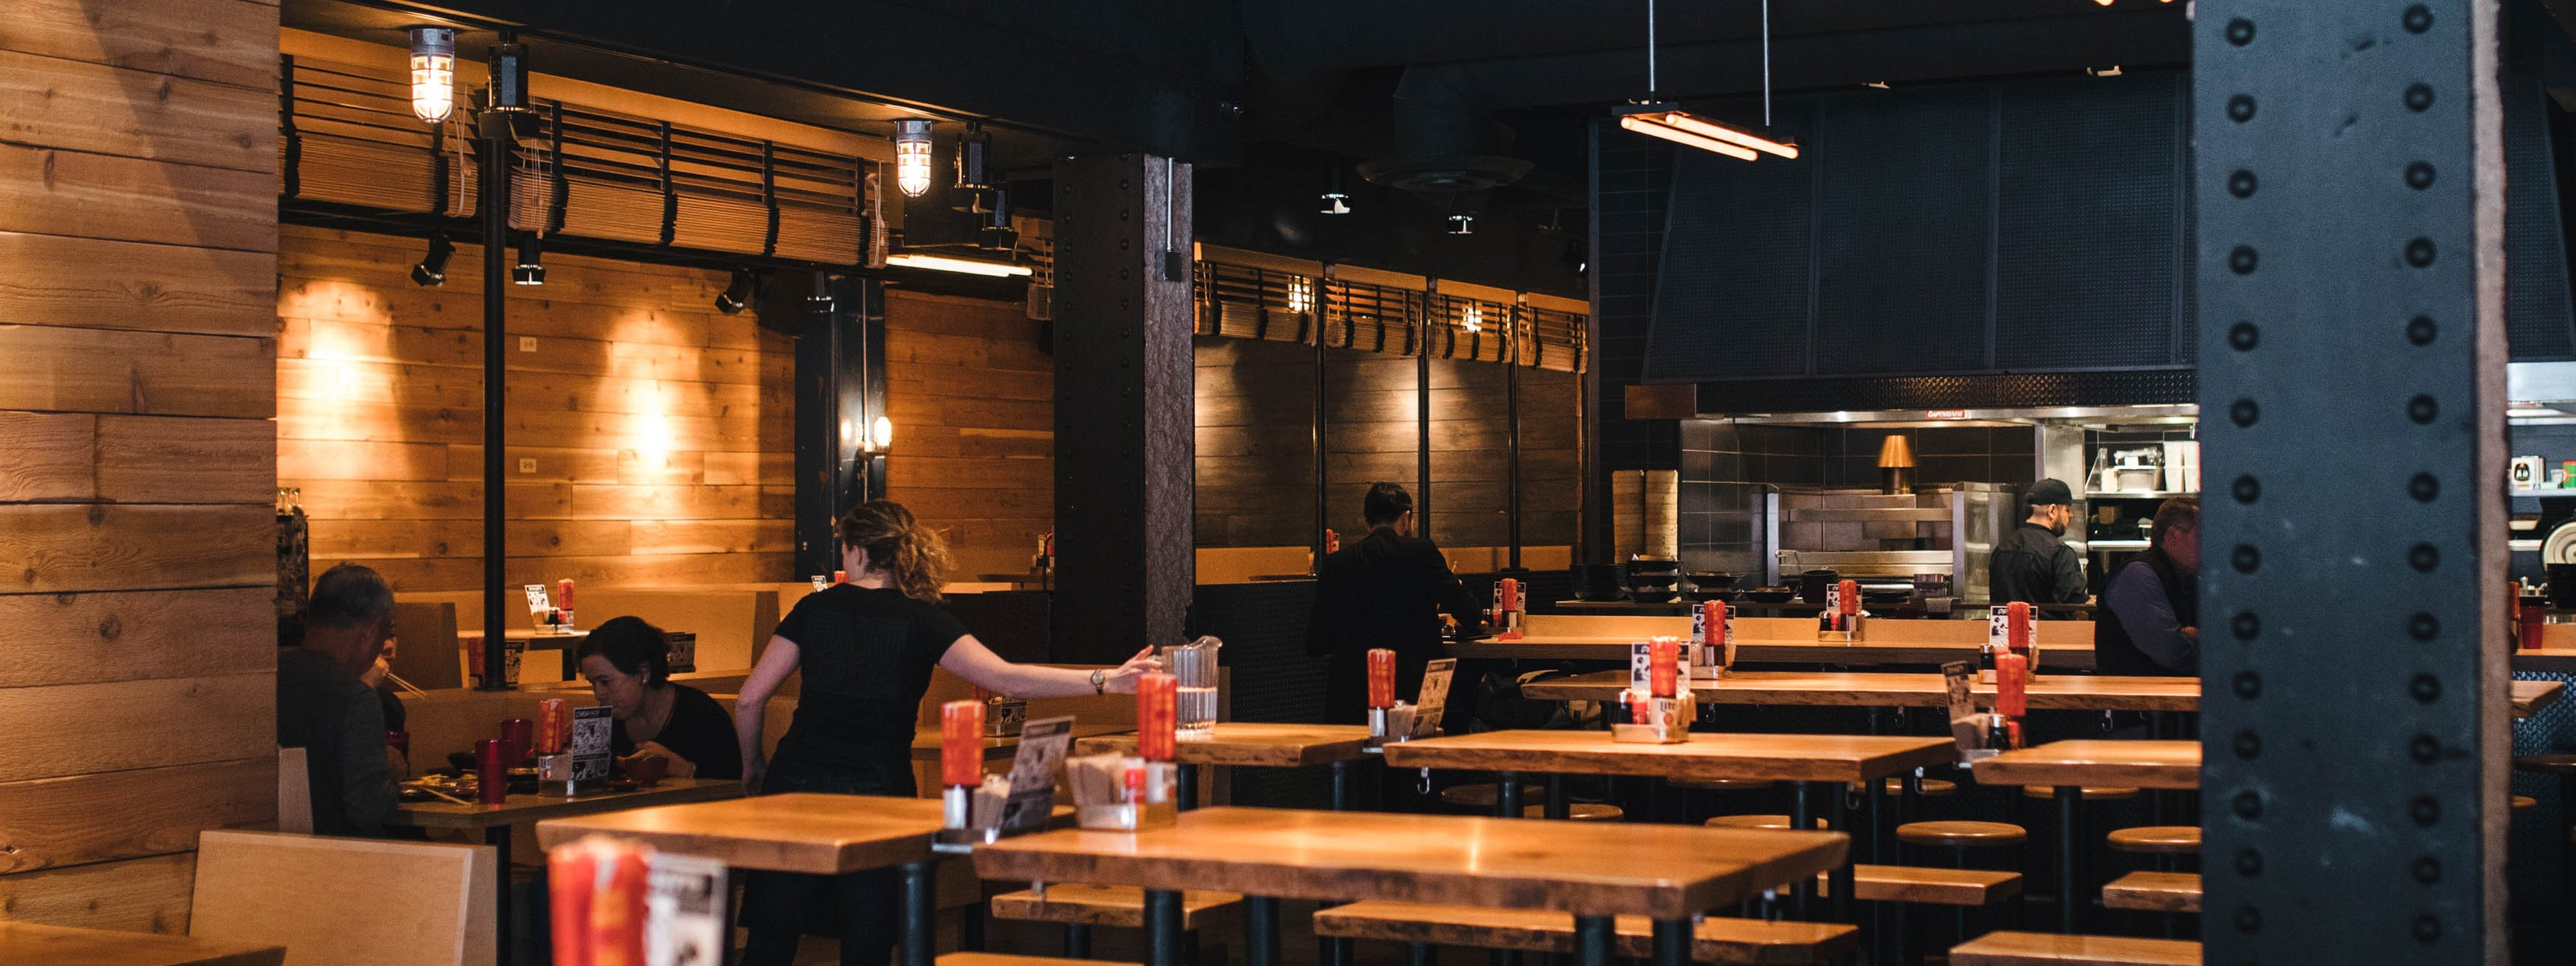 Sushi-san - River North - Chicago - The Infatuation